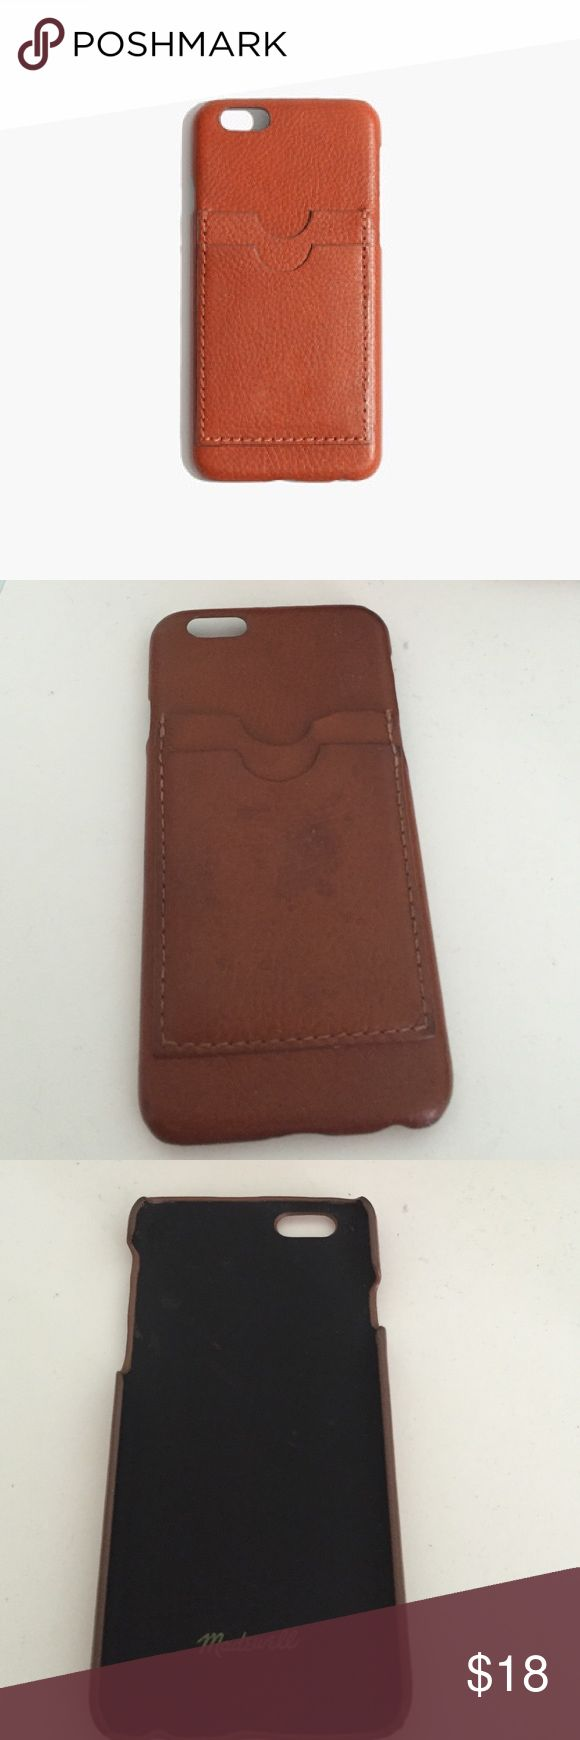 REAL LEATHER brown iPhone 6 phone case Real brown leather snap on iPhone case with credit card holder on back. Bring into your local Madewell for 10$ monogramming! Madewell Accessories Phone Cases